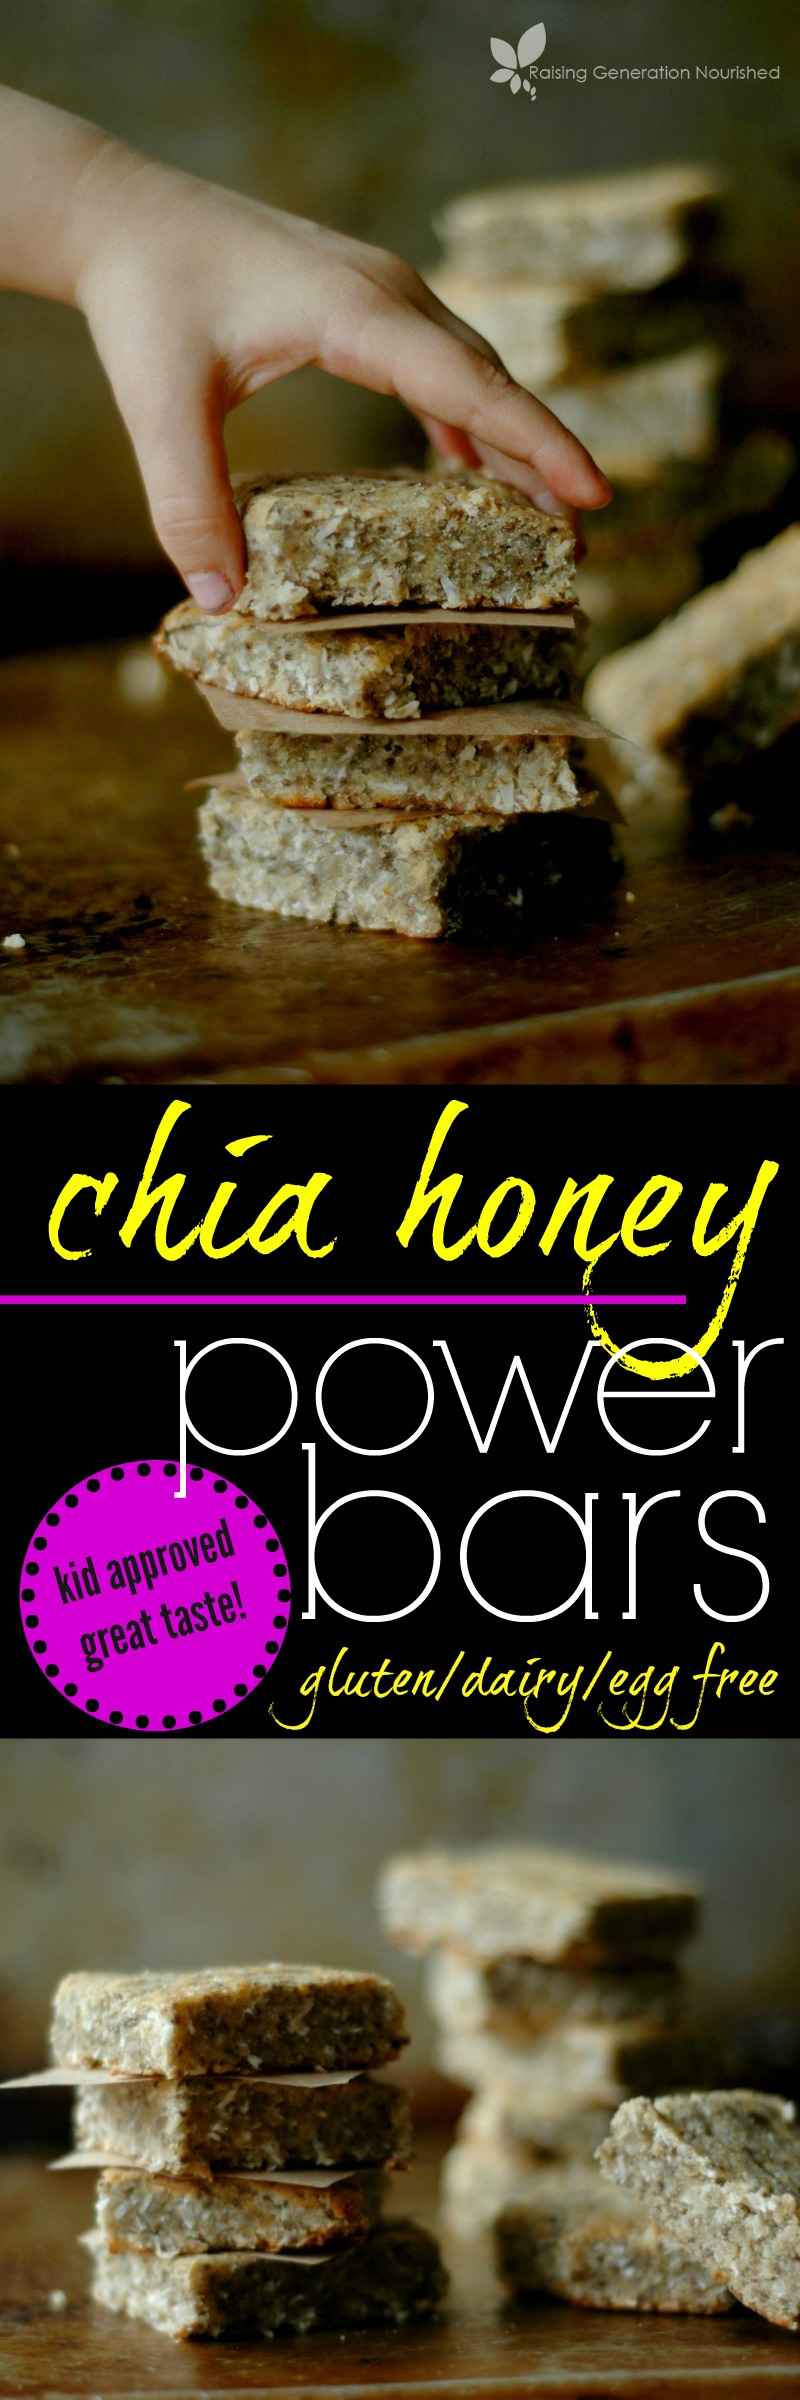 Paleo Chia Honey Power Bars :: Gluten, Egg, and Dairy Free